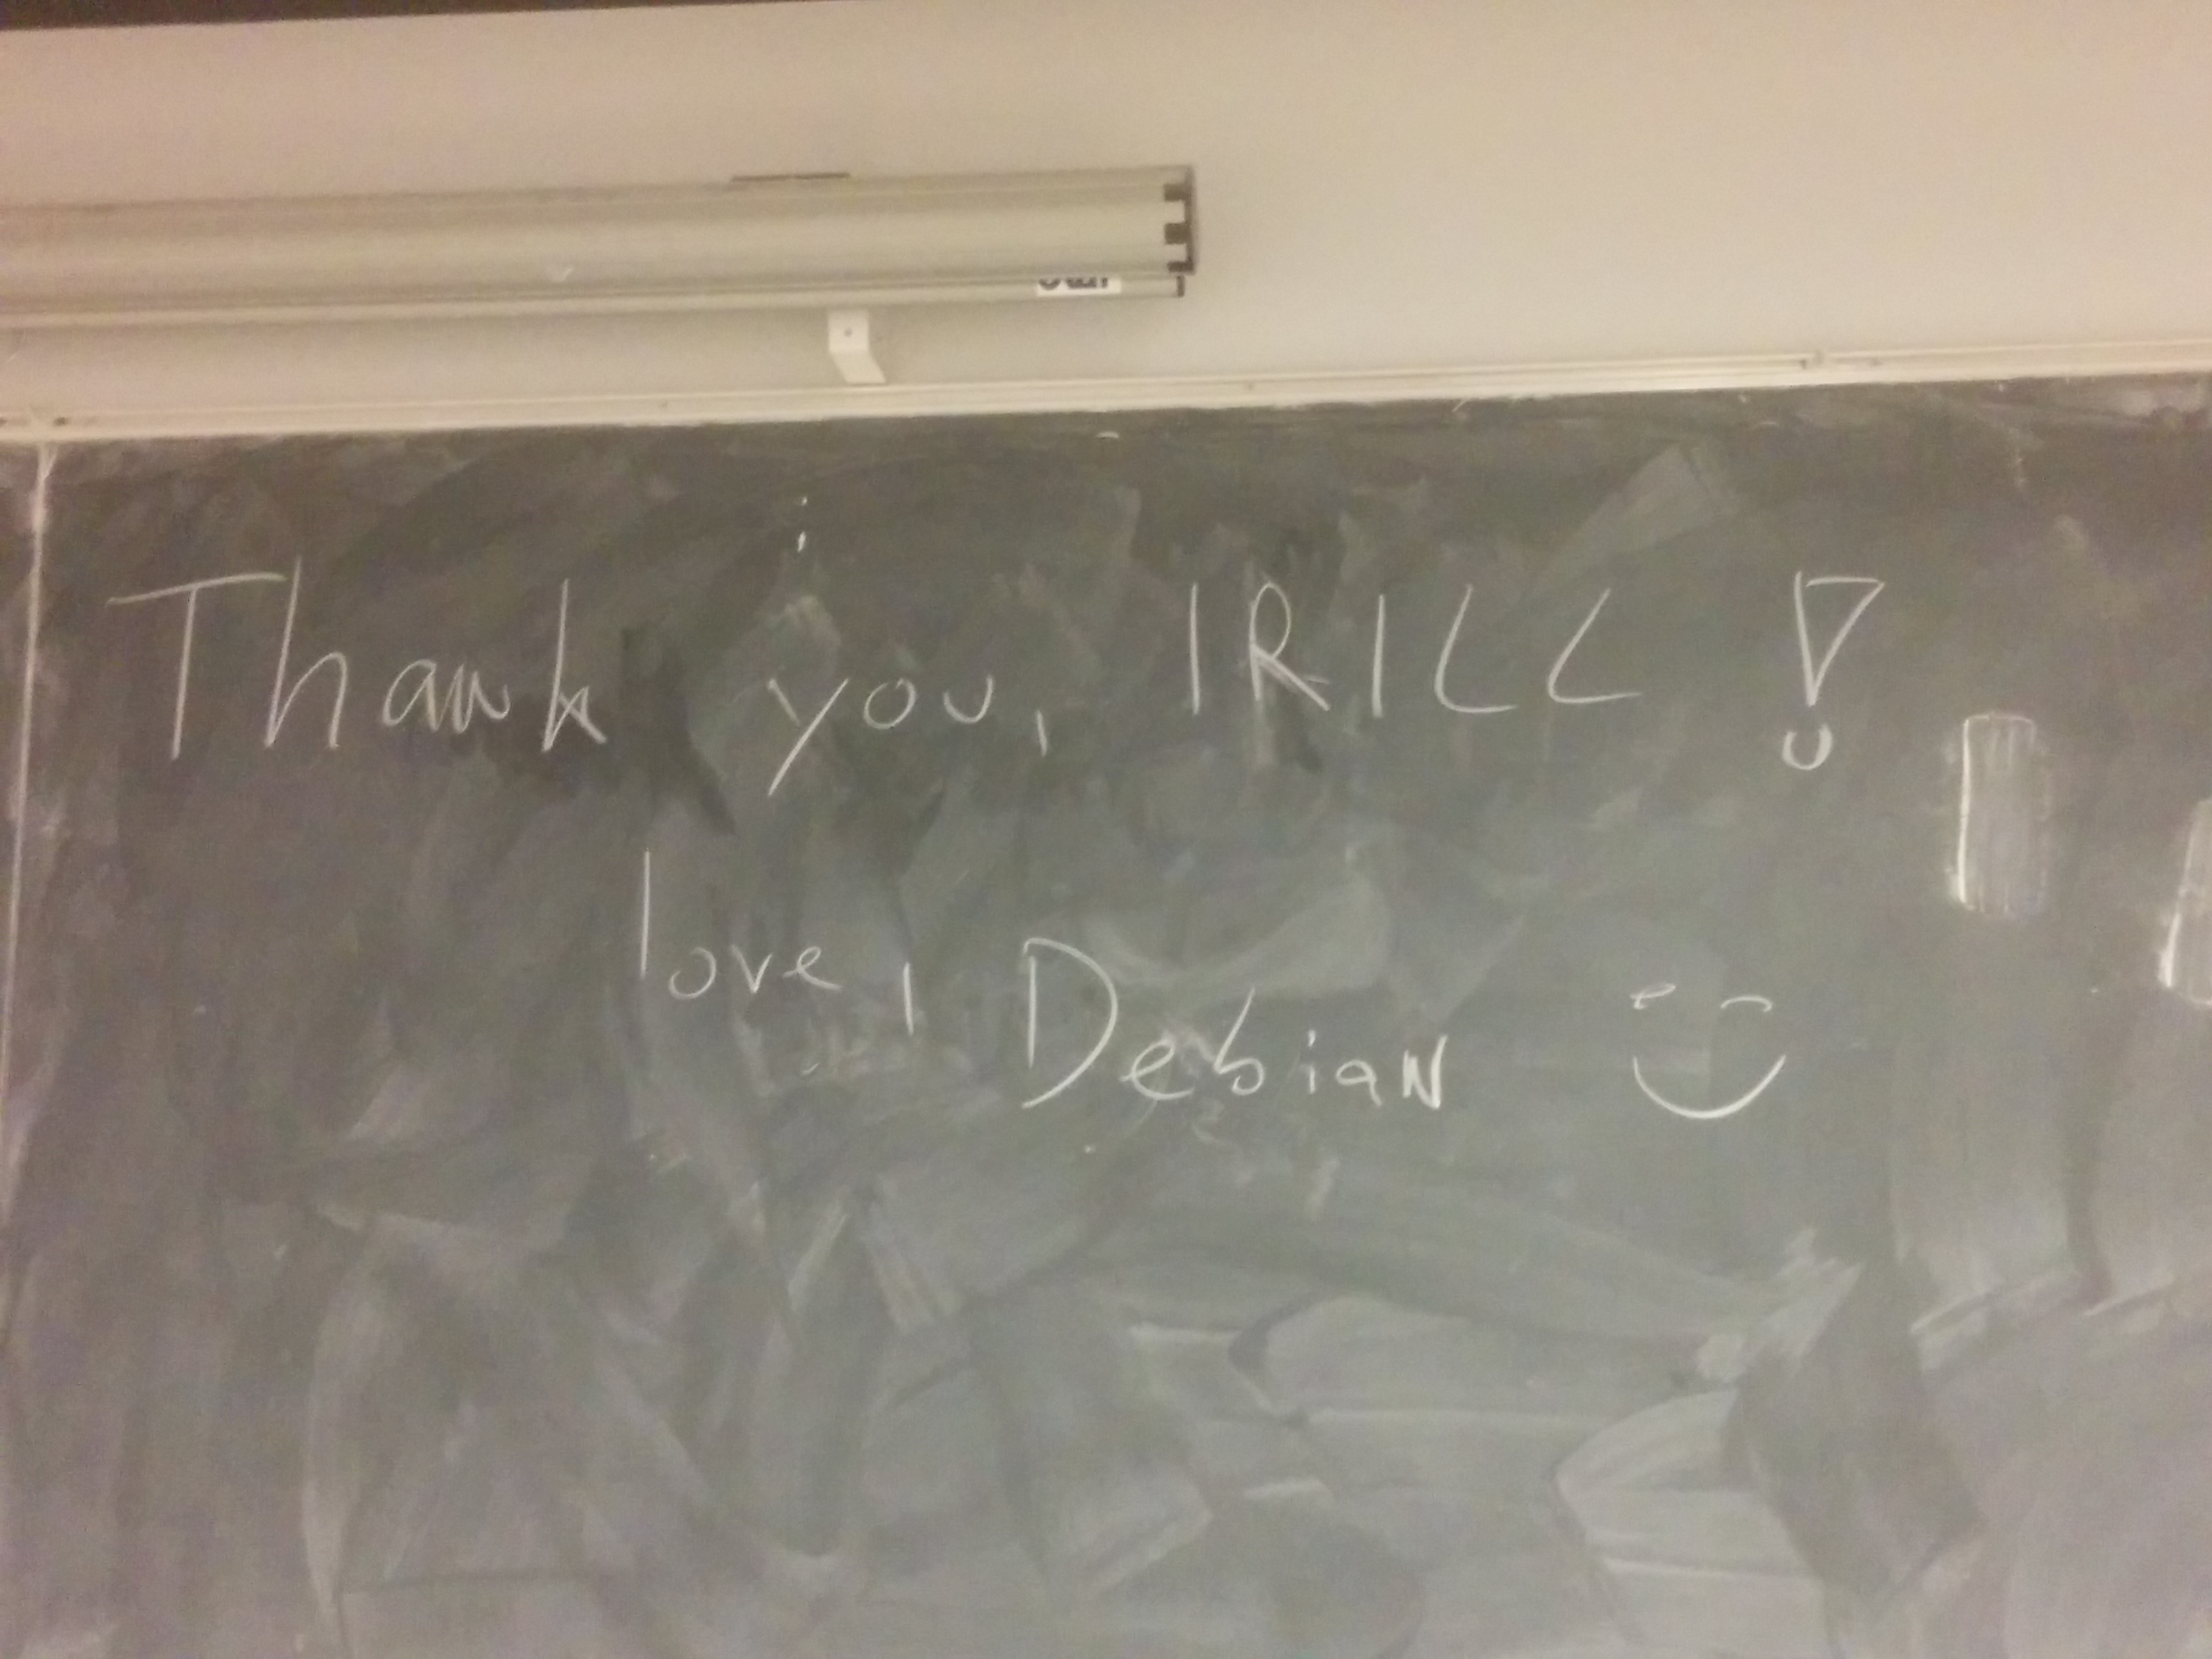 A thank you message to IRILL h01ger wrote on a blackboard